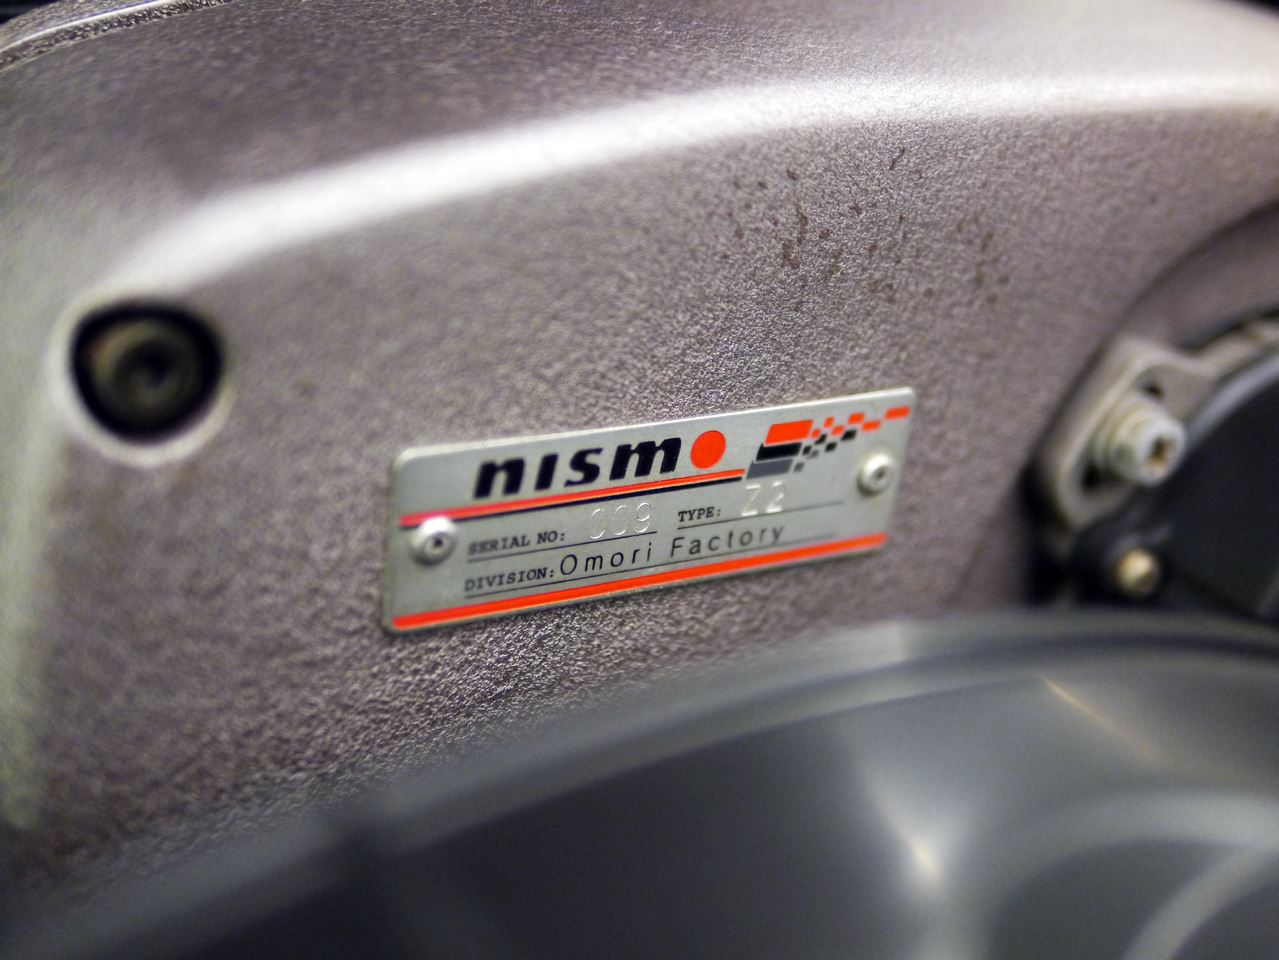 Nismo Nissan GT-R R34 Z -Tune for sale (7)